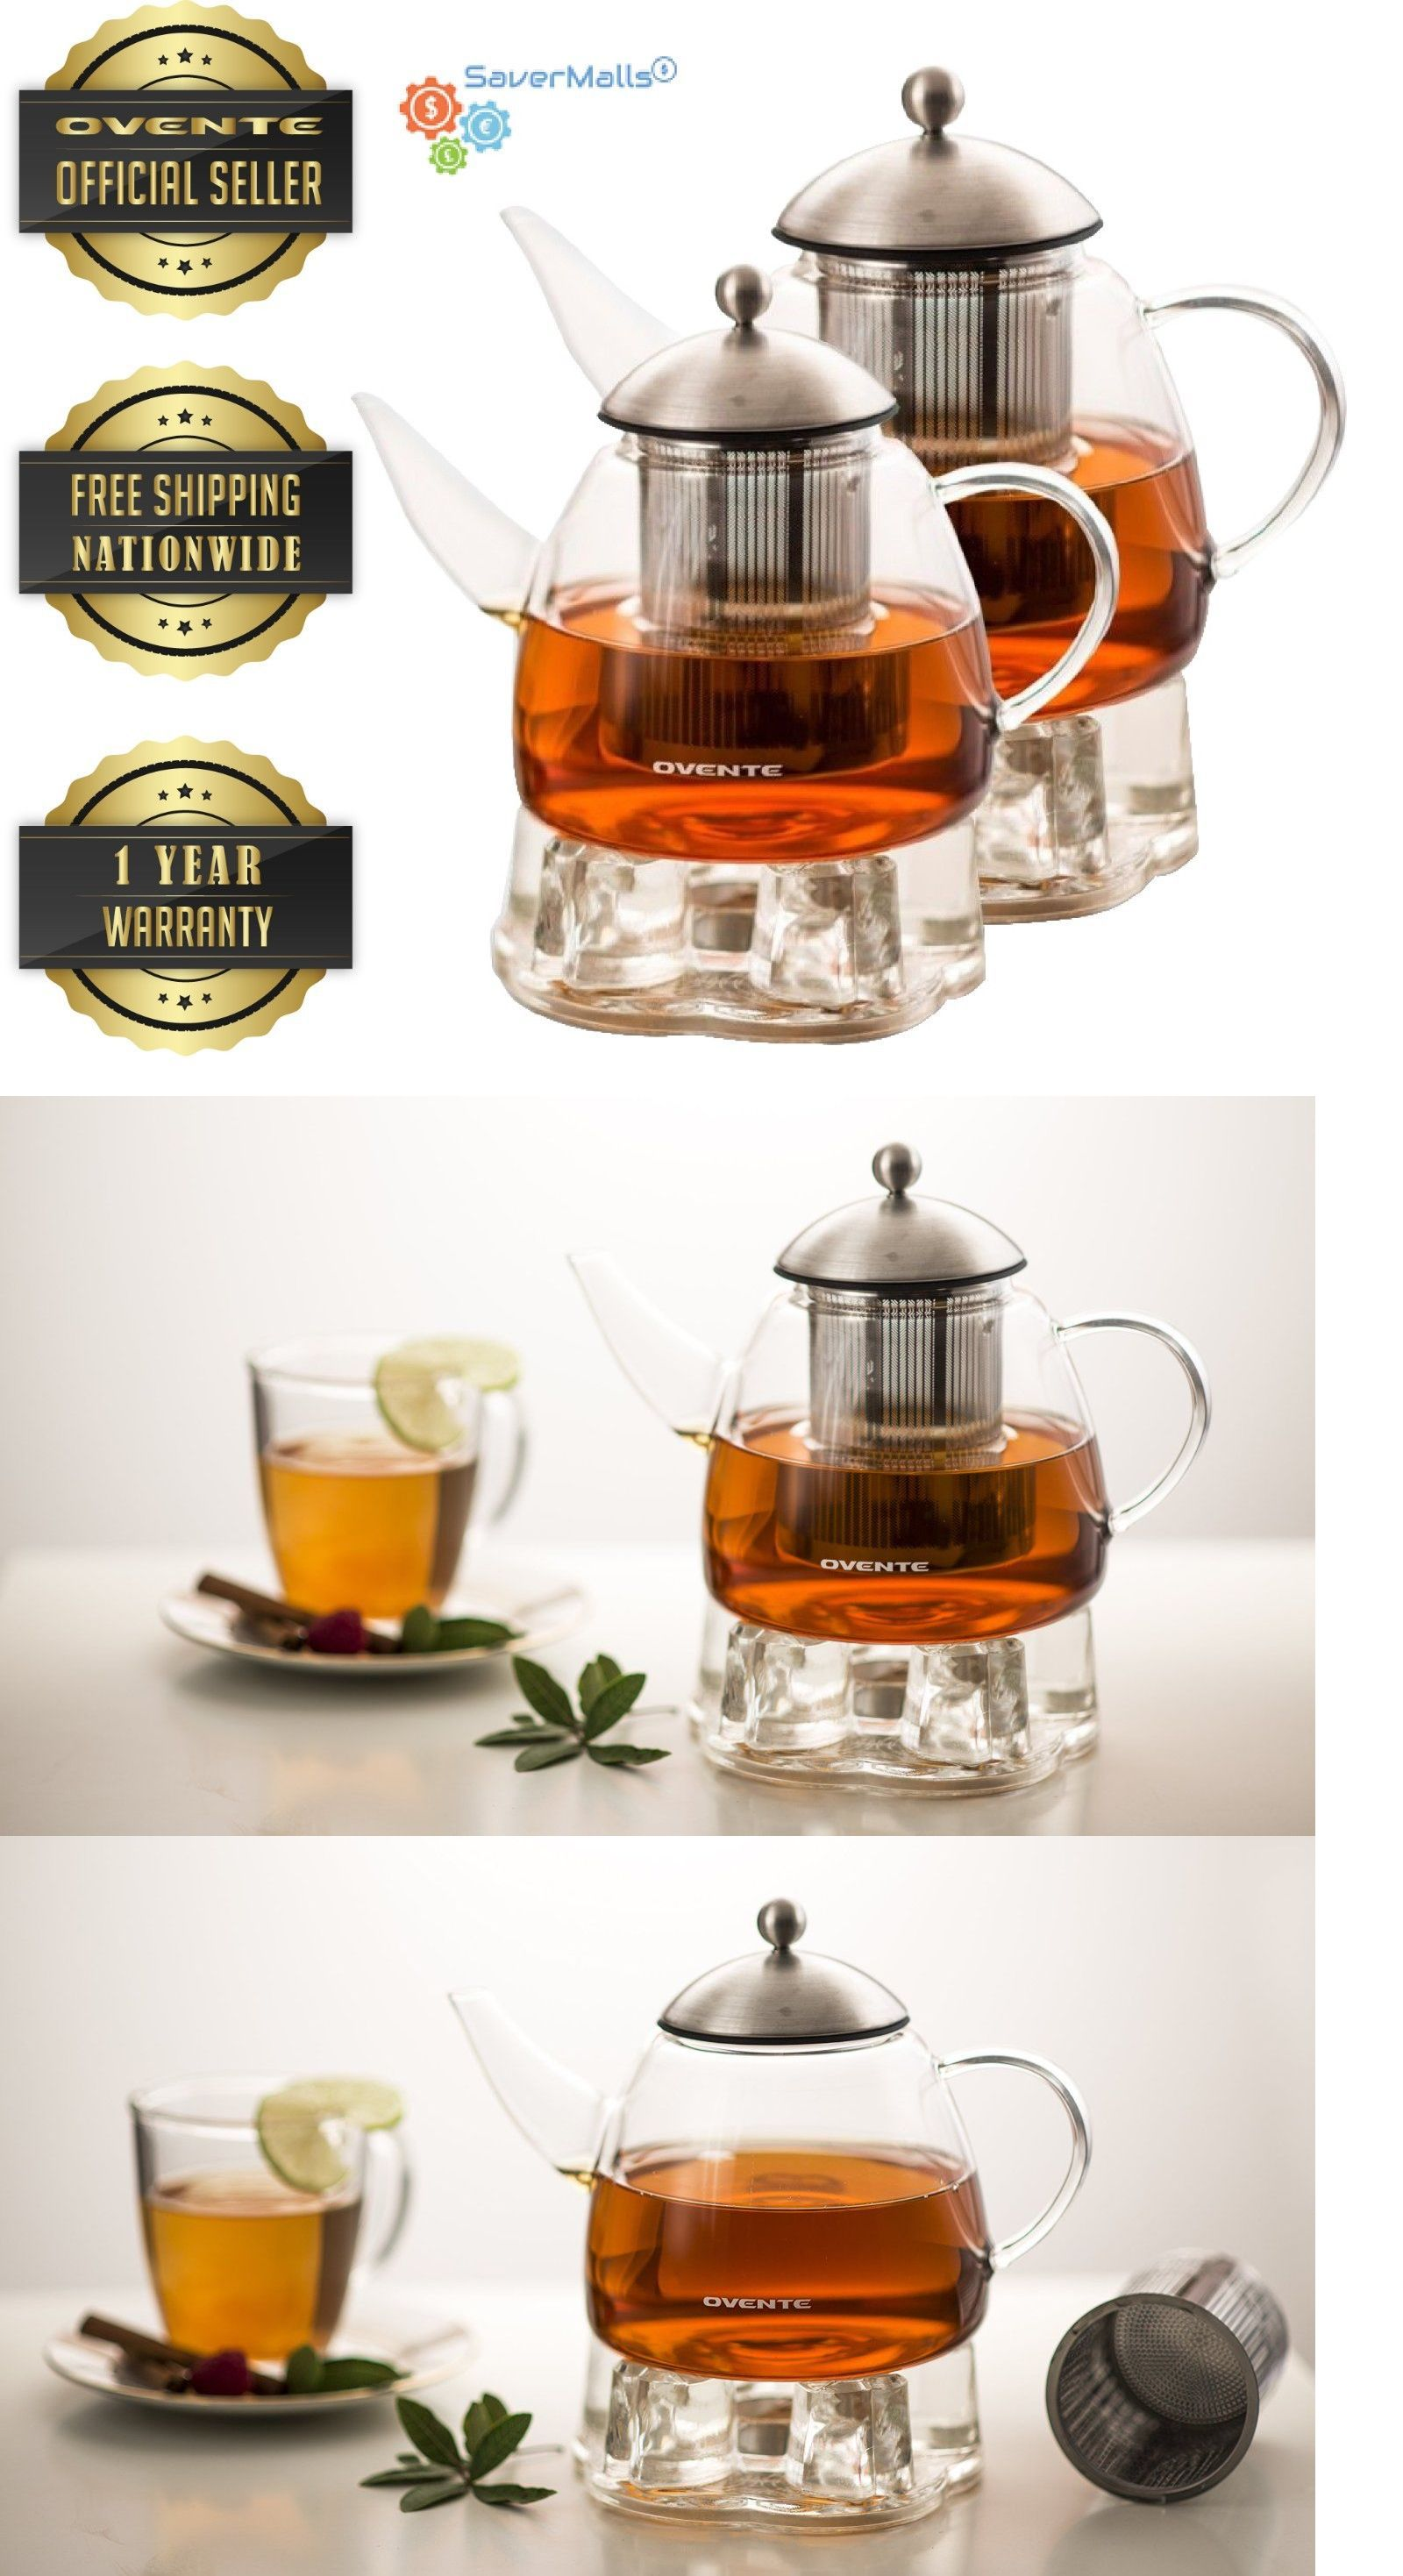 Teapots 115730 Ovente Heat Tempered Glass Teapot With Tea Infuser